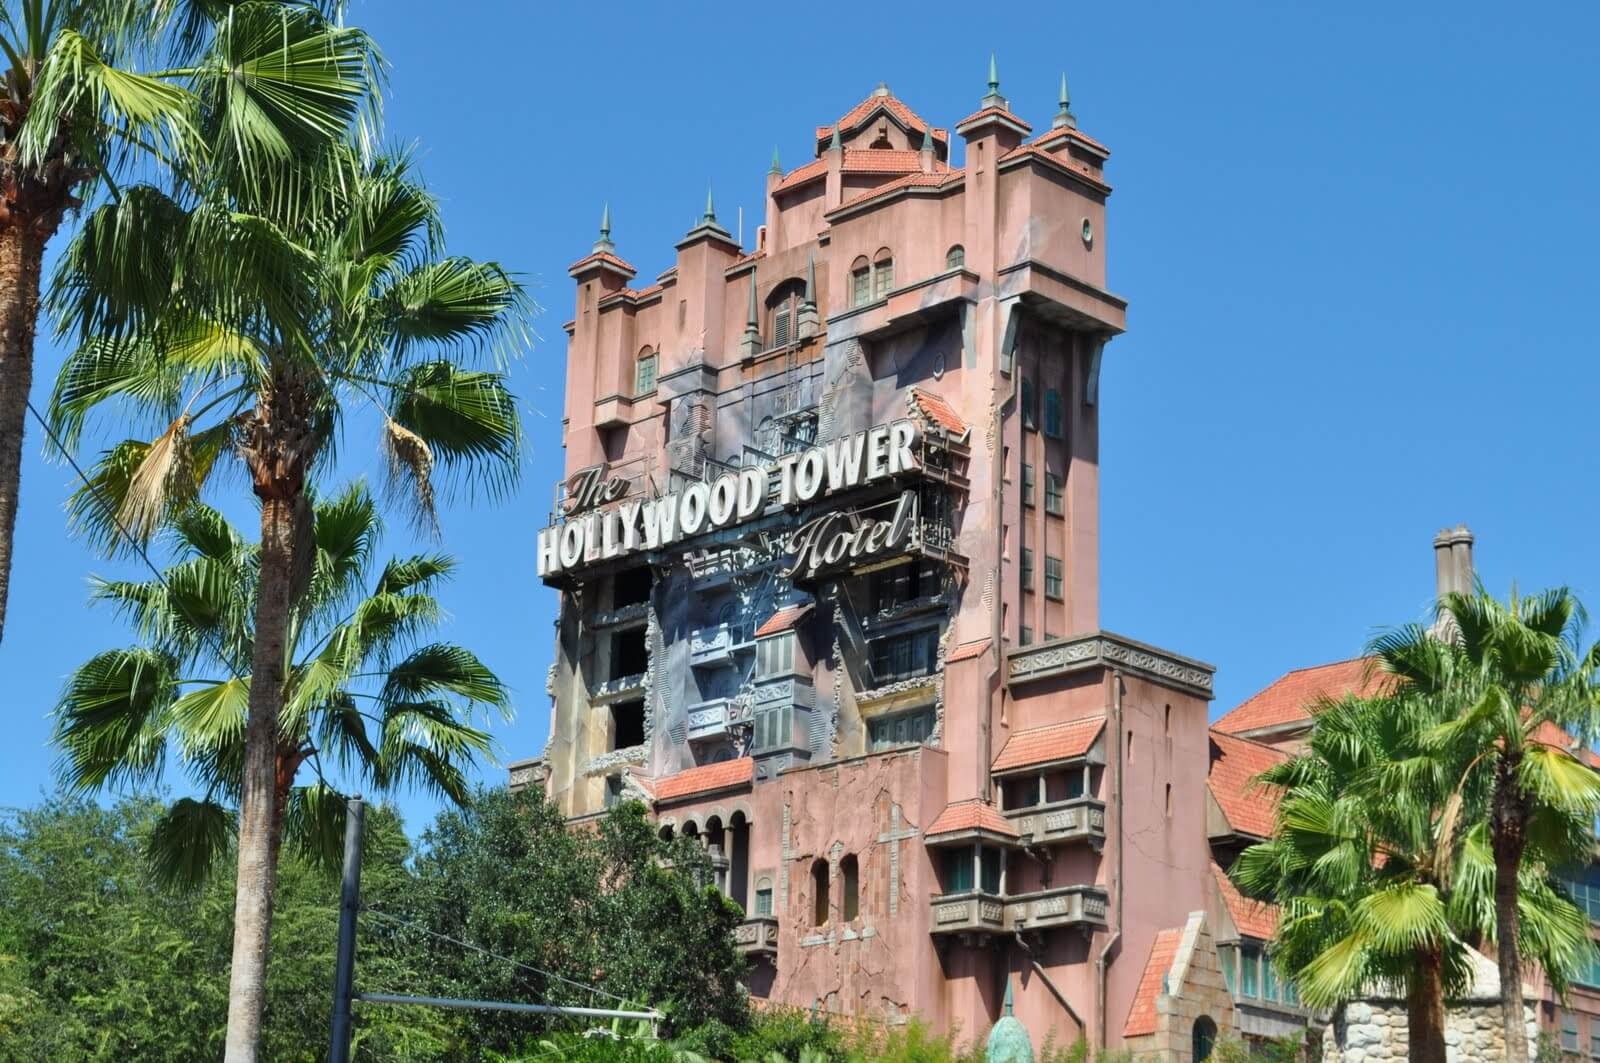 Hollywood Hotel Tower of Terror